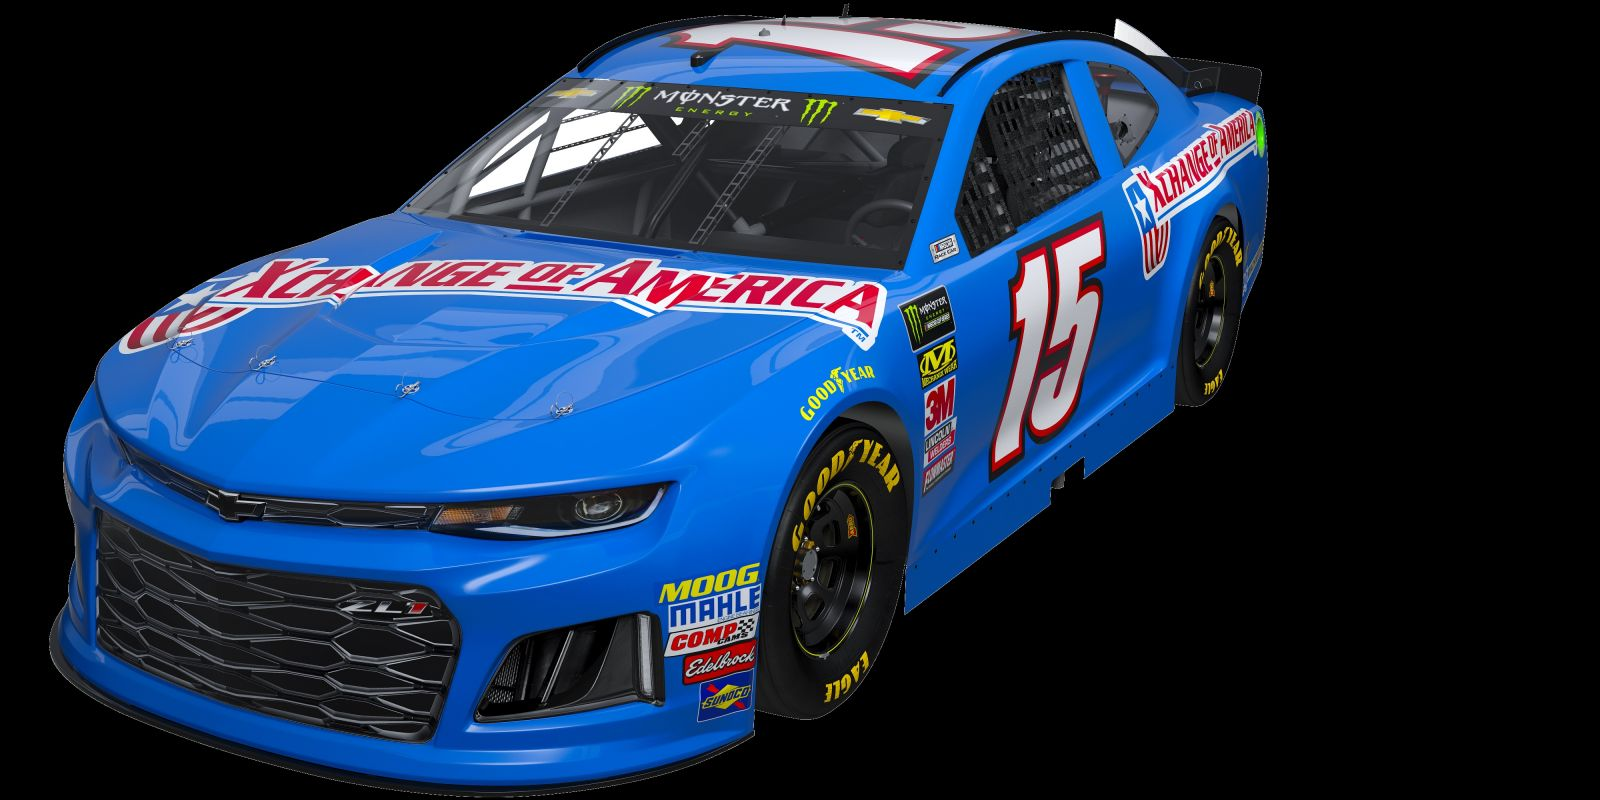 Come See Xchange Of America And Premium Motorsports Compete In The Monster Energy Nascar Cup Series